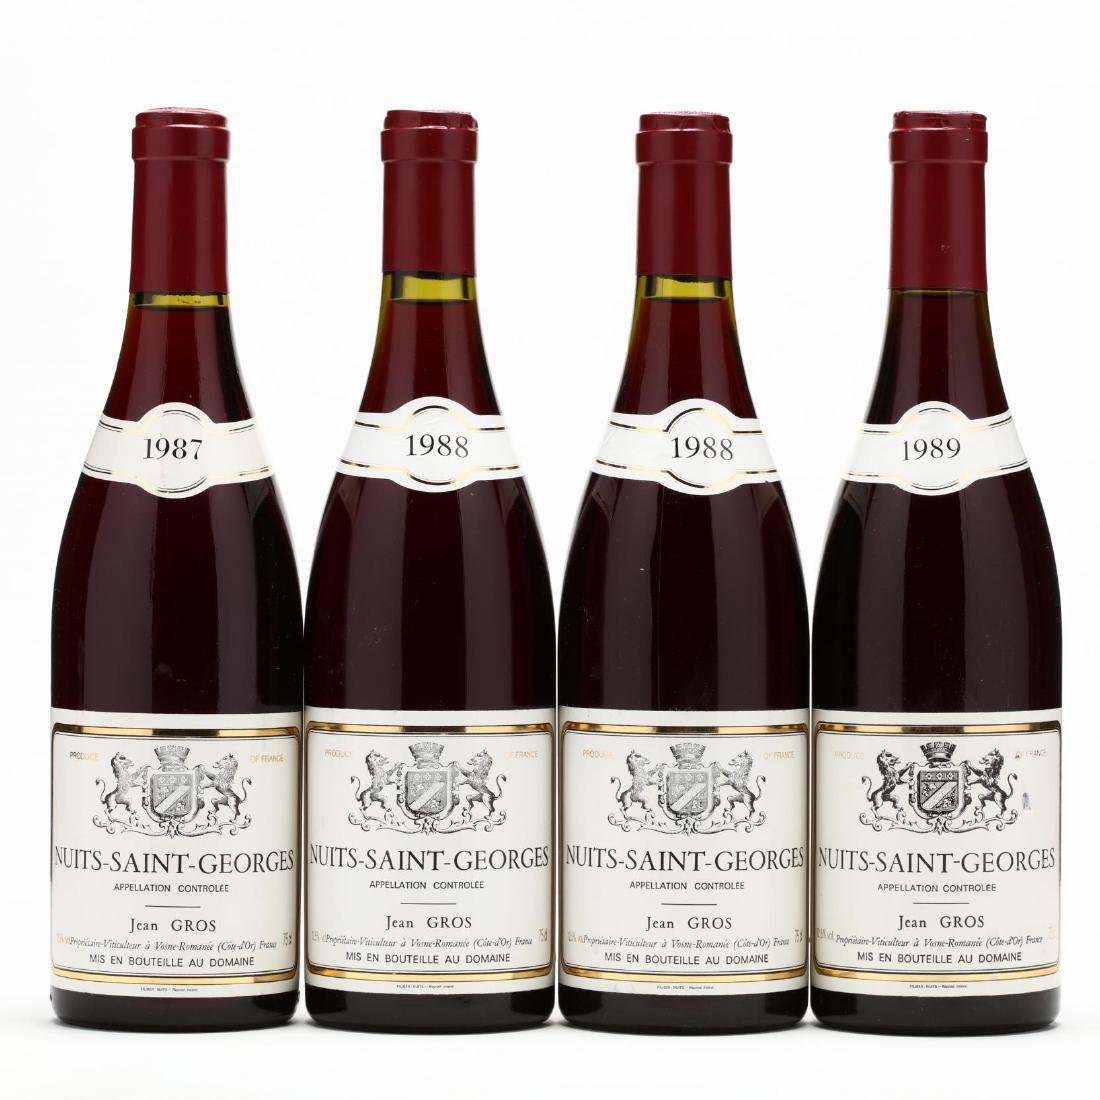 1987-1989 Nuits St. Georges Vertical